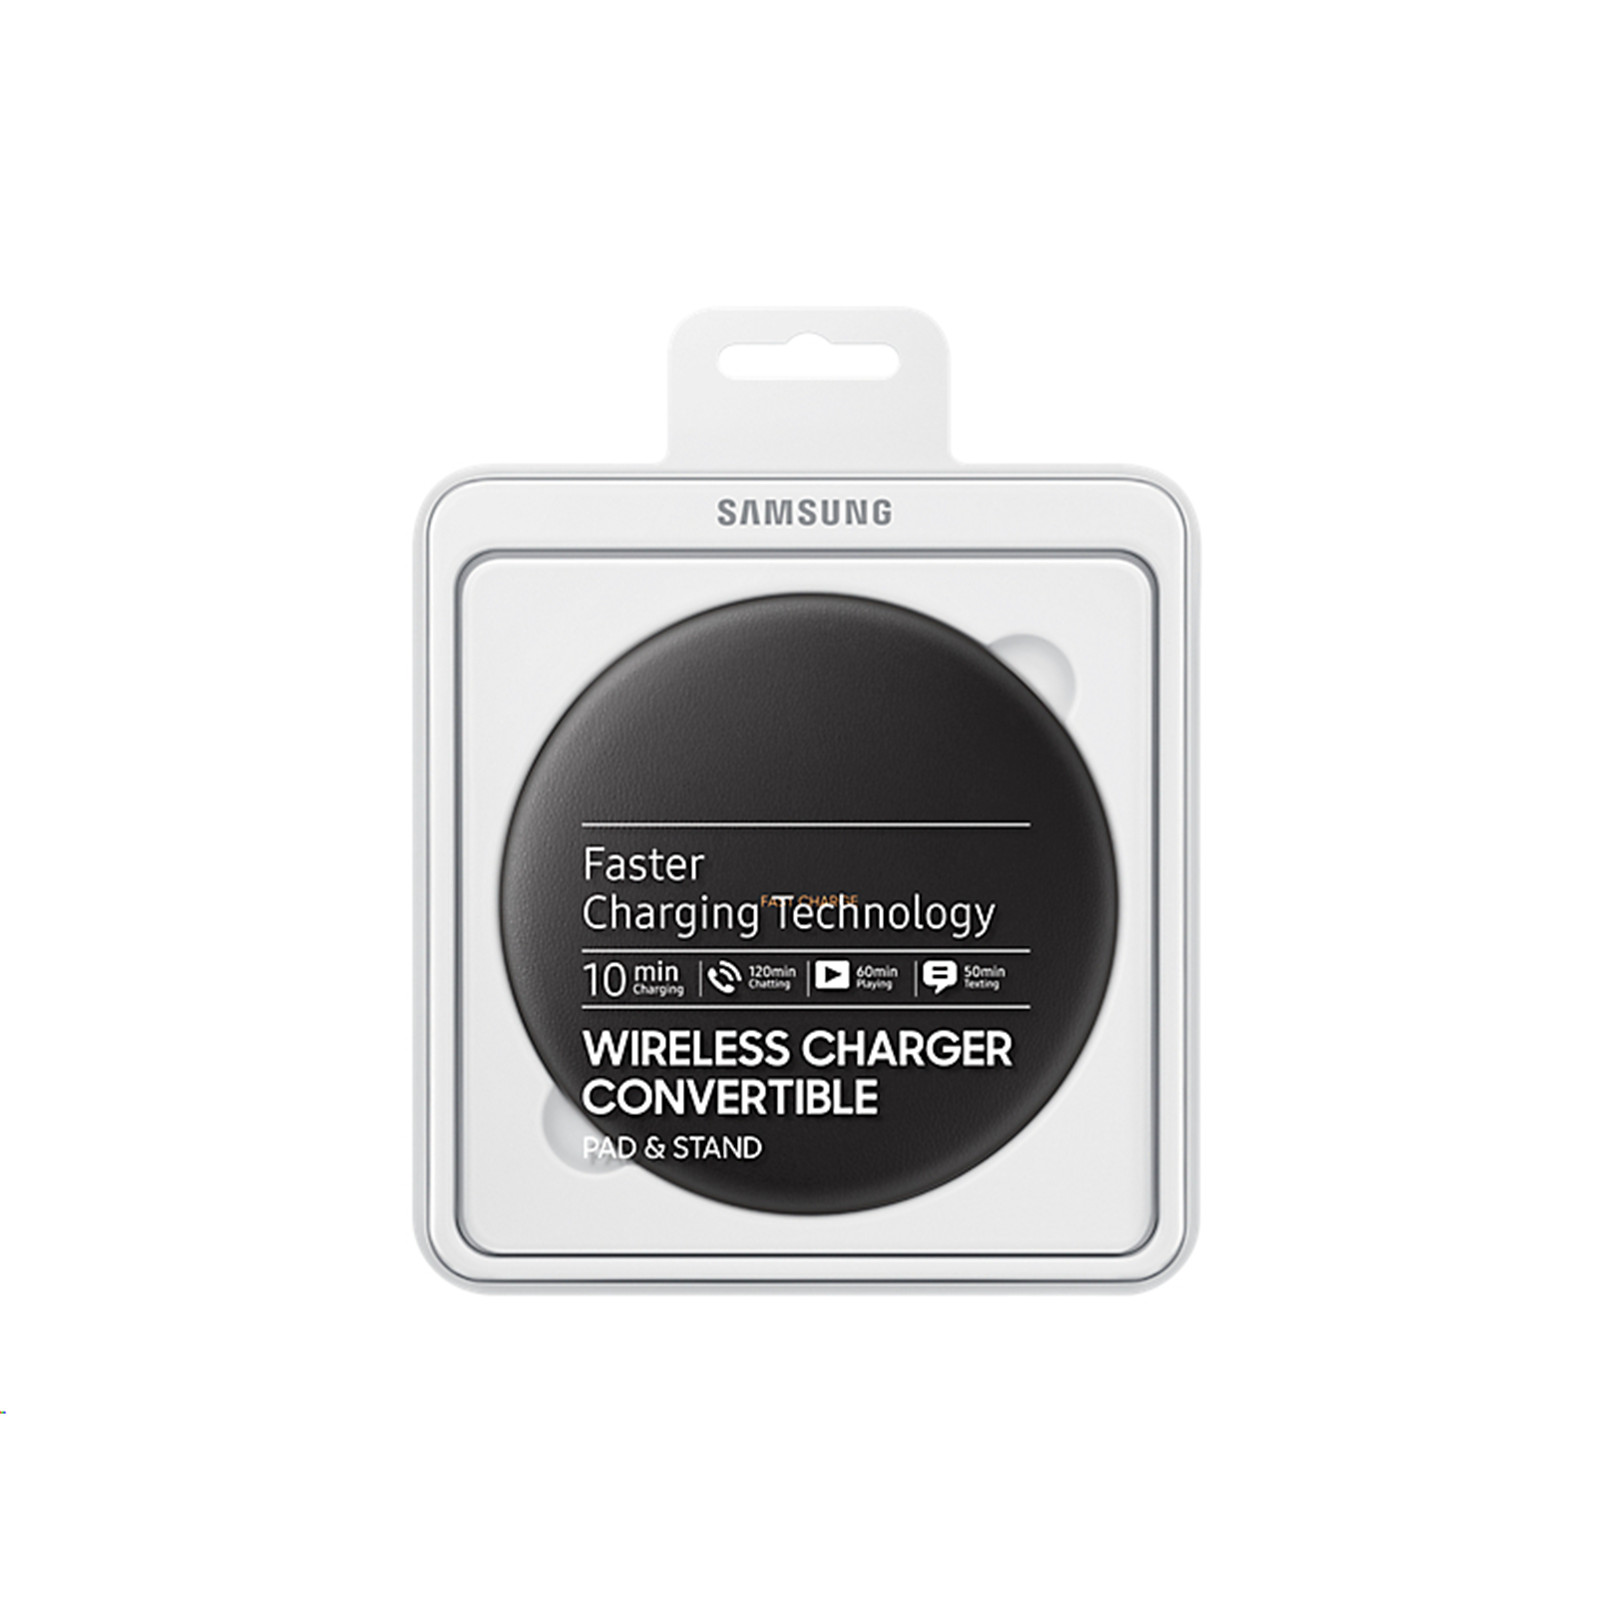 Buy the Samsung Fast Wireless Charging Convertible Stand